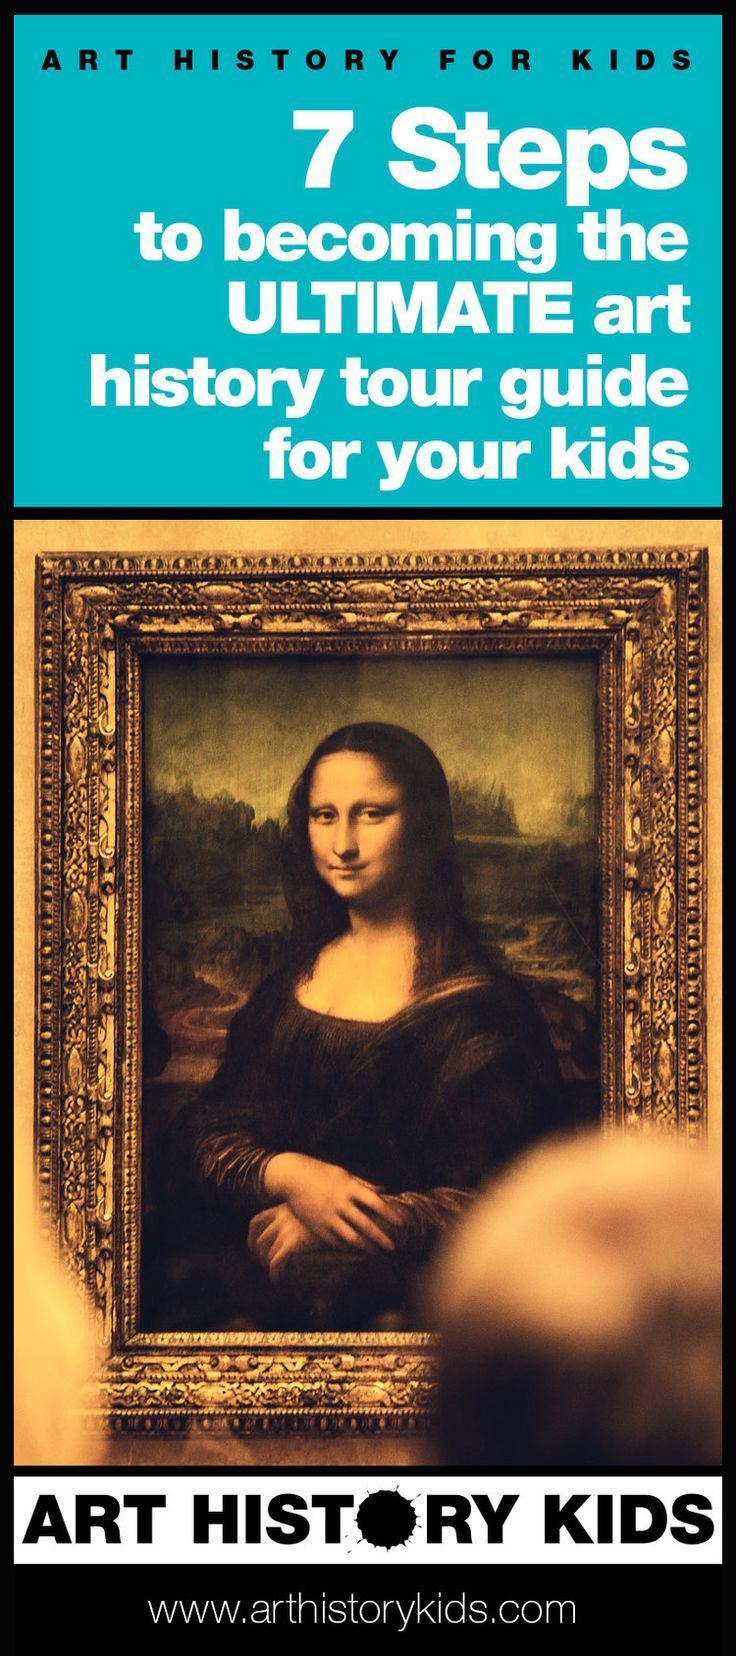 Photo of 7 steps to becoming the ULTIMATE art history tour guide for your kids — Art History Kids